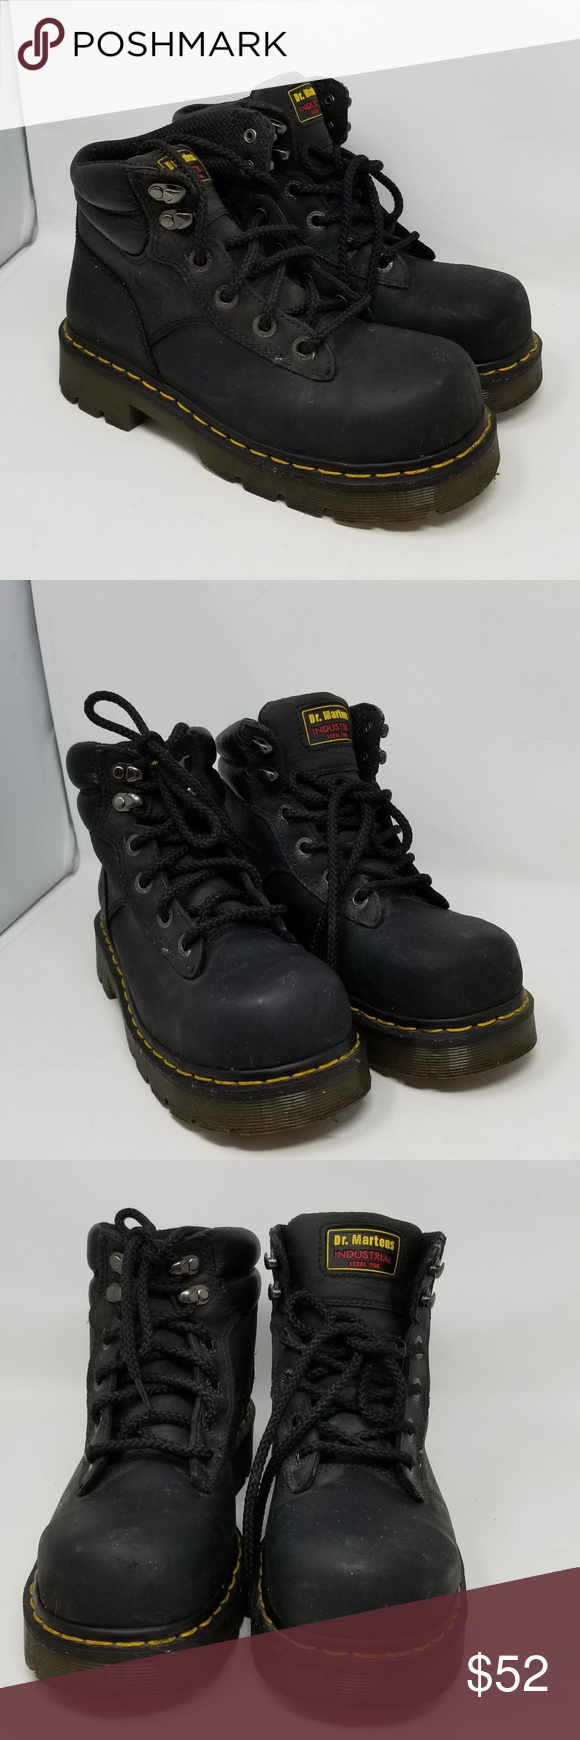 Dr Martens industrial Steel Toe Safety boots Boots